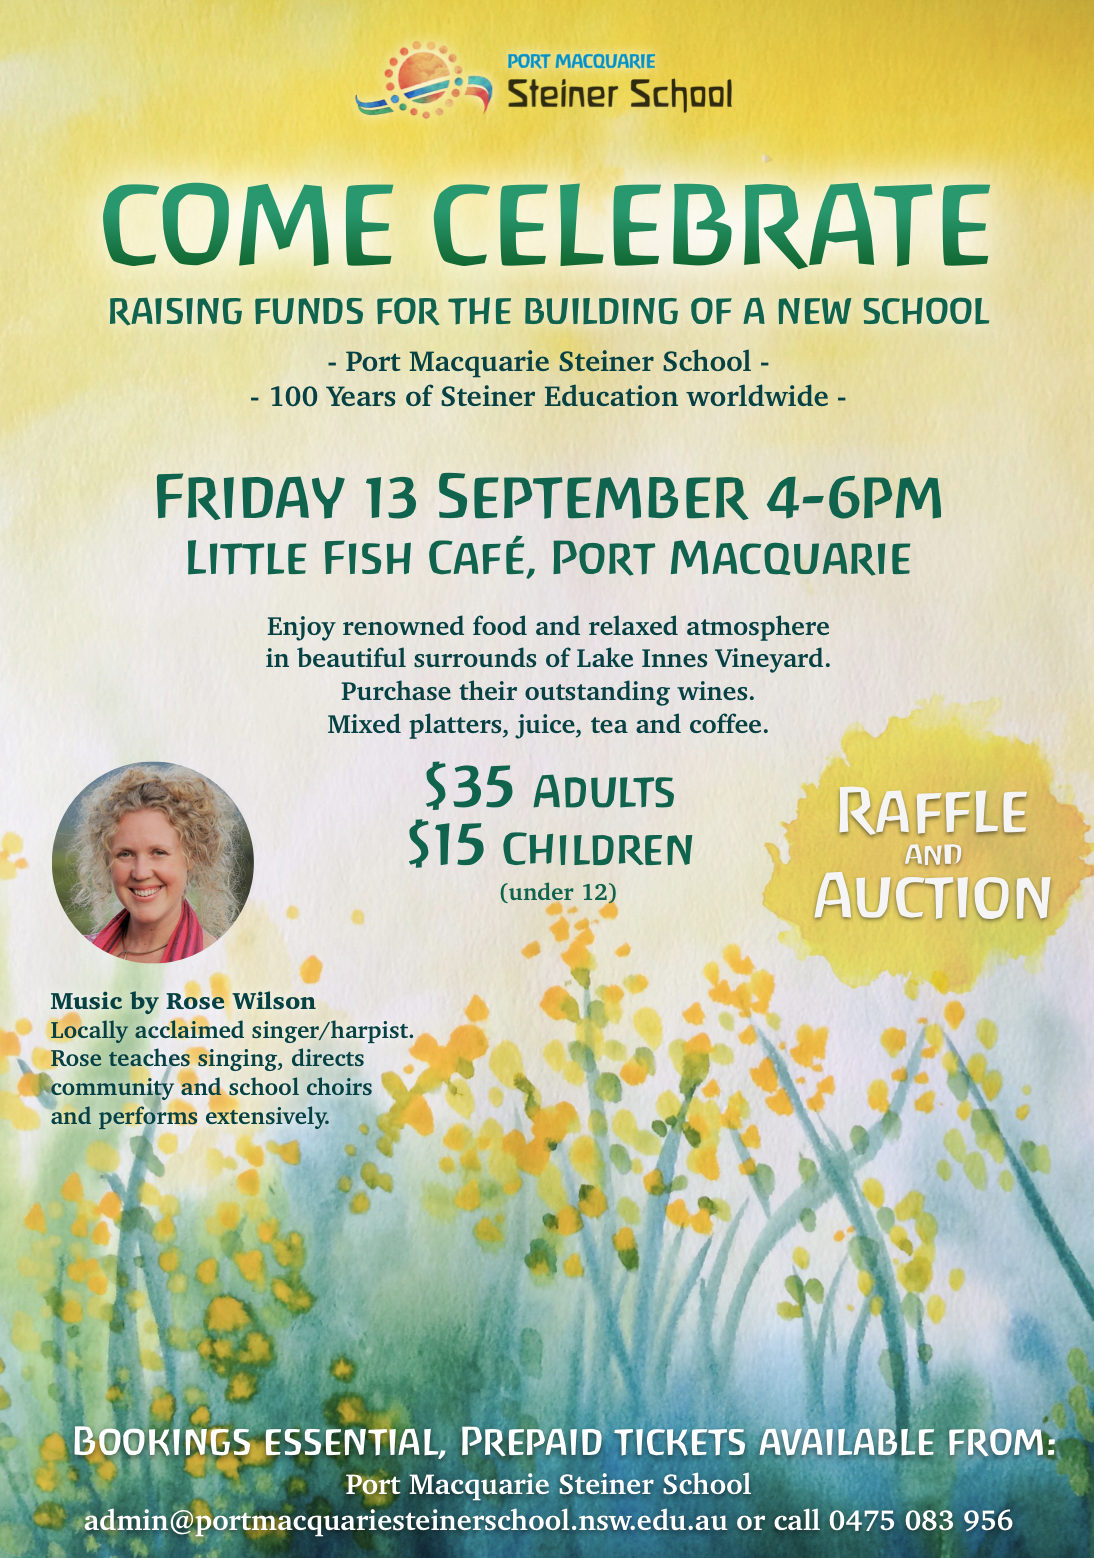 Flyer: Port Macquarie Steiner School Celebration Fundraiser